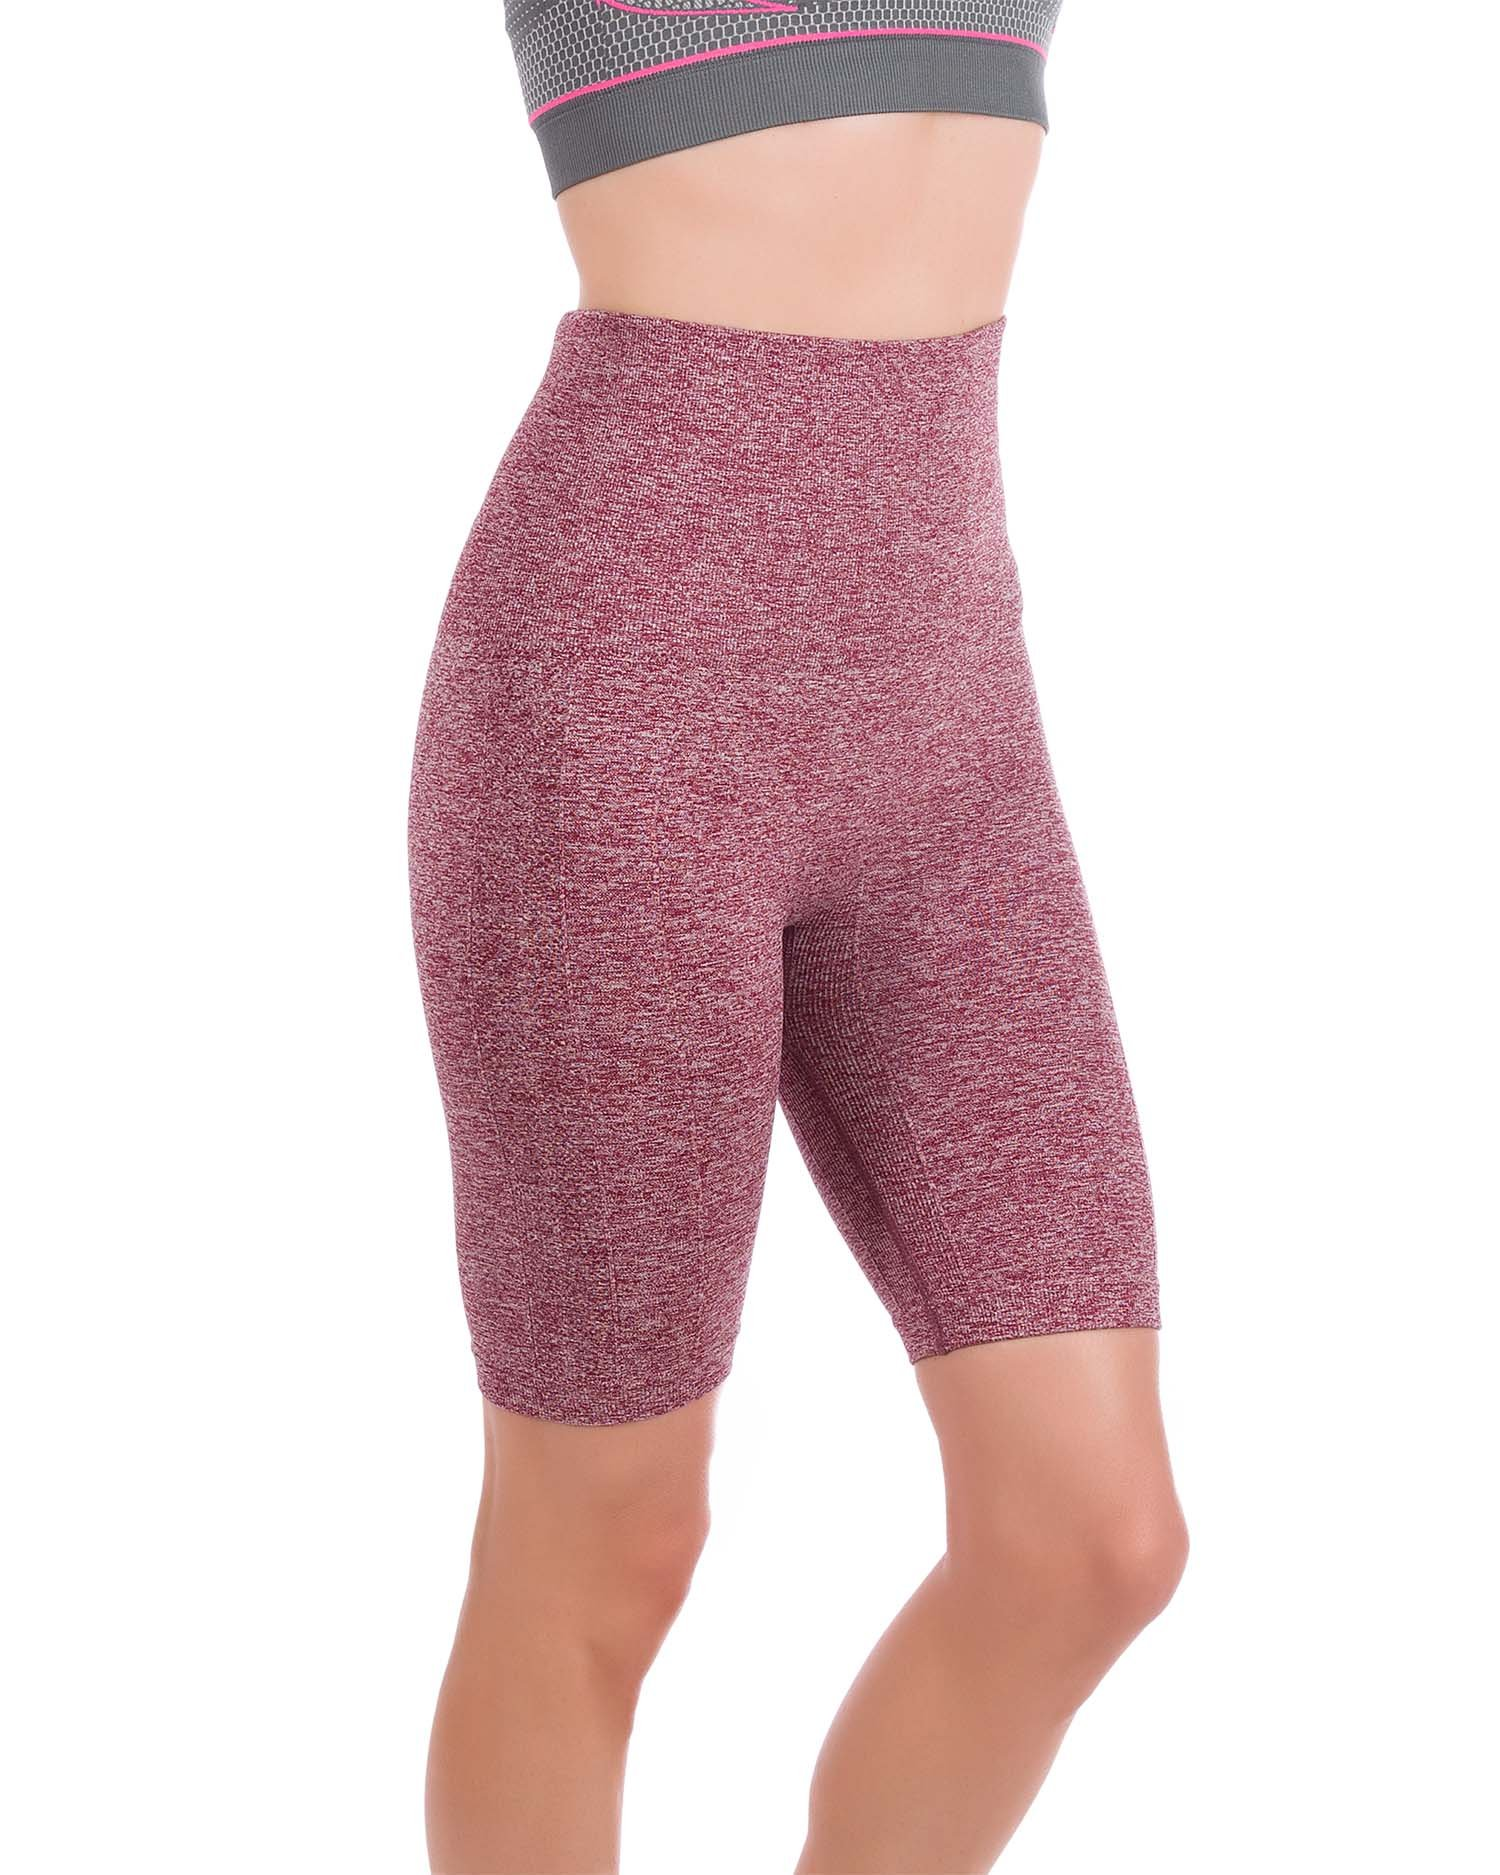 Homma Women's Tummy Control Fitness Workout Running Yoga Shorts (Small, H.Burgundy) by Homma